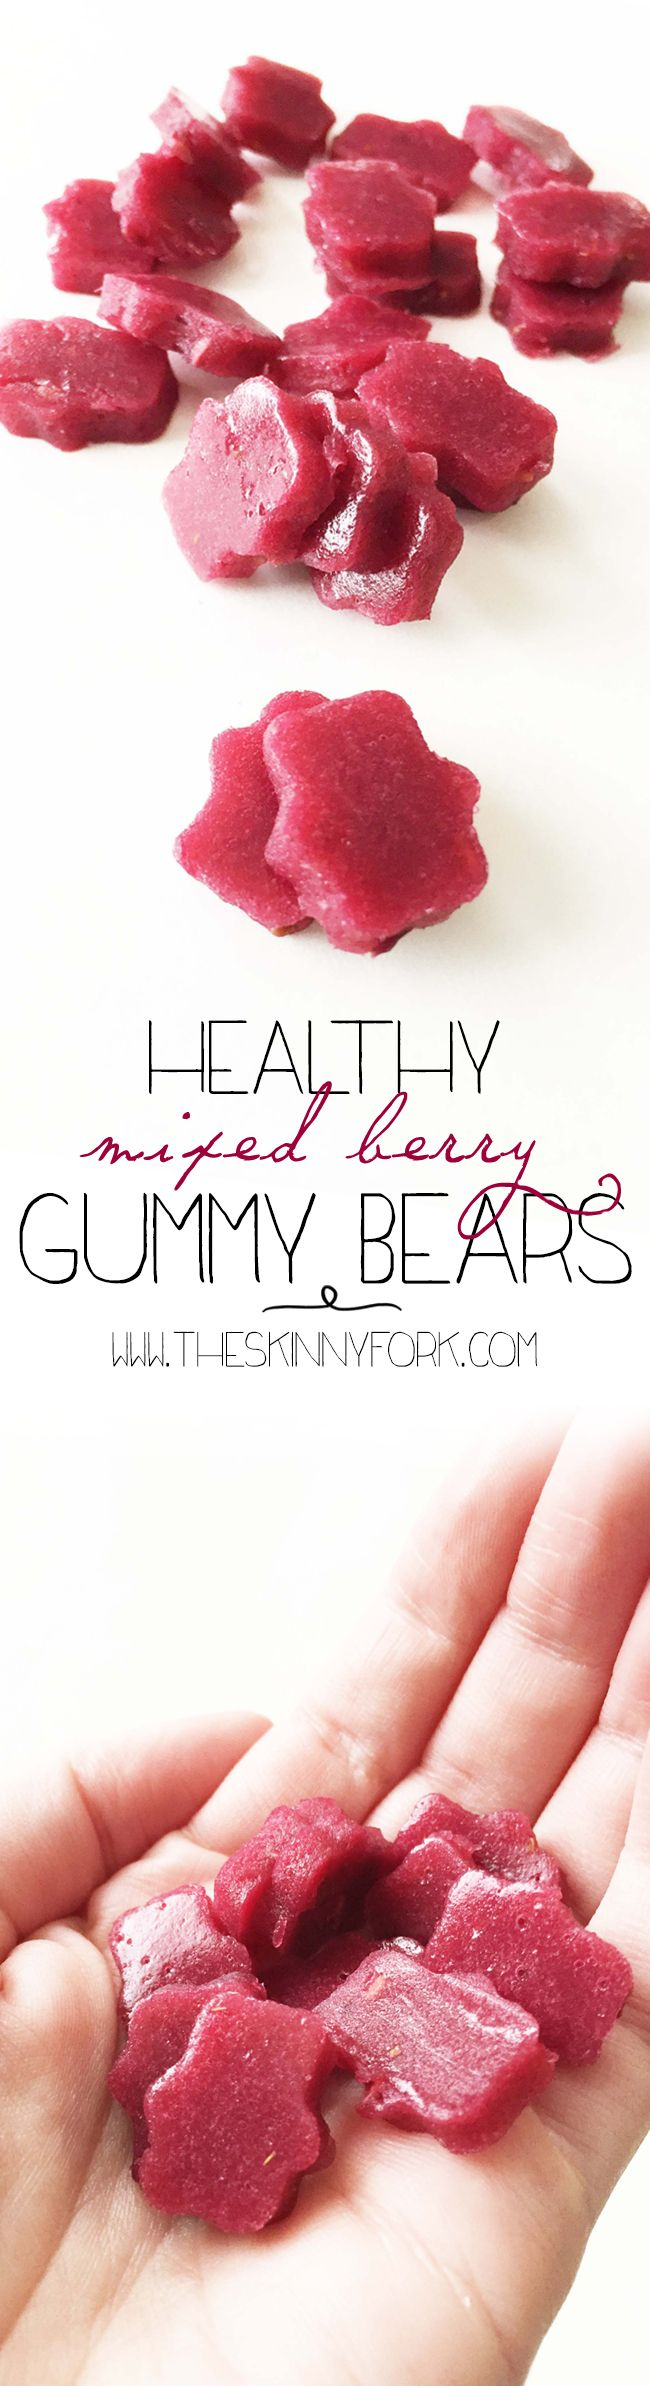 Healthy Mixed Berry Gummy Bears - Made with fruit juice, fresh fruit, and not much else! Healthy and homemade! Gluten free and all natural.